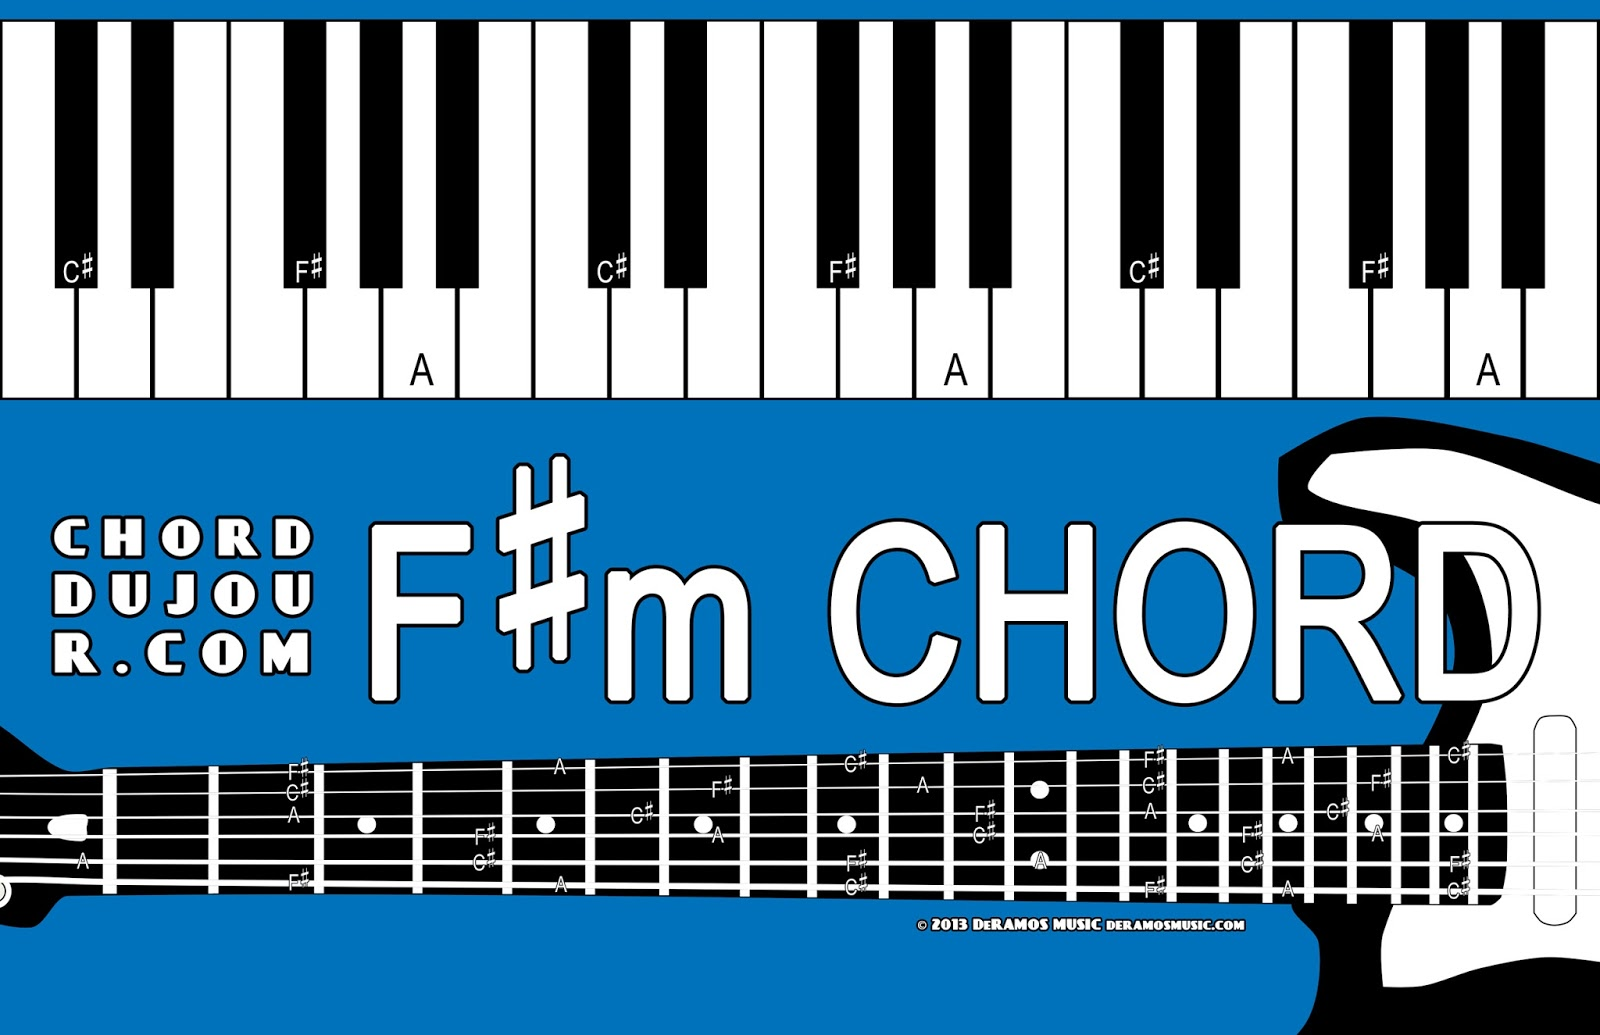 Chord du jour dictionary fm chord dictionary fm chord hexwebz Gallery